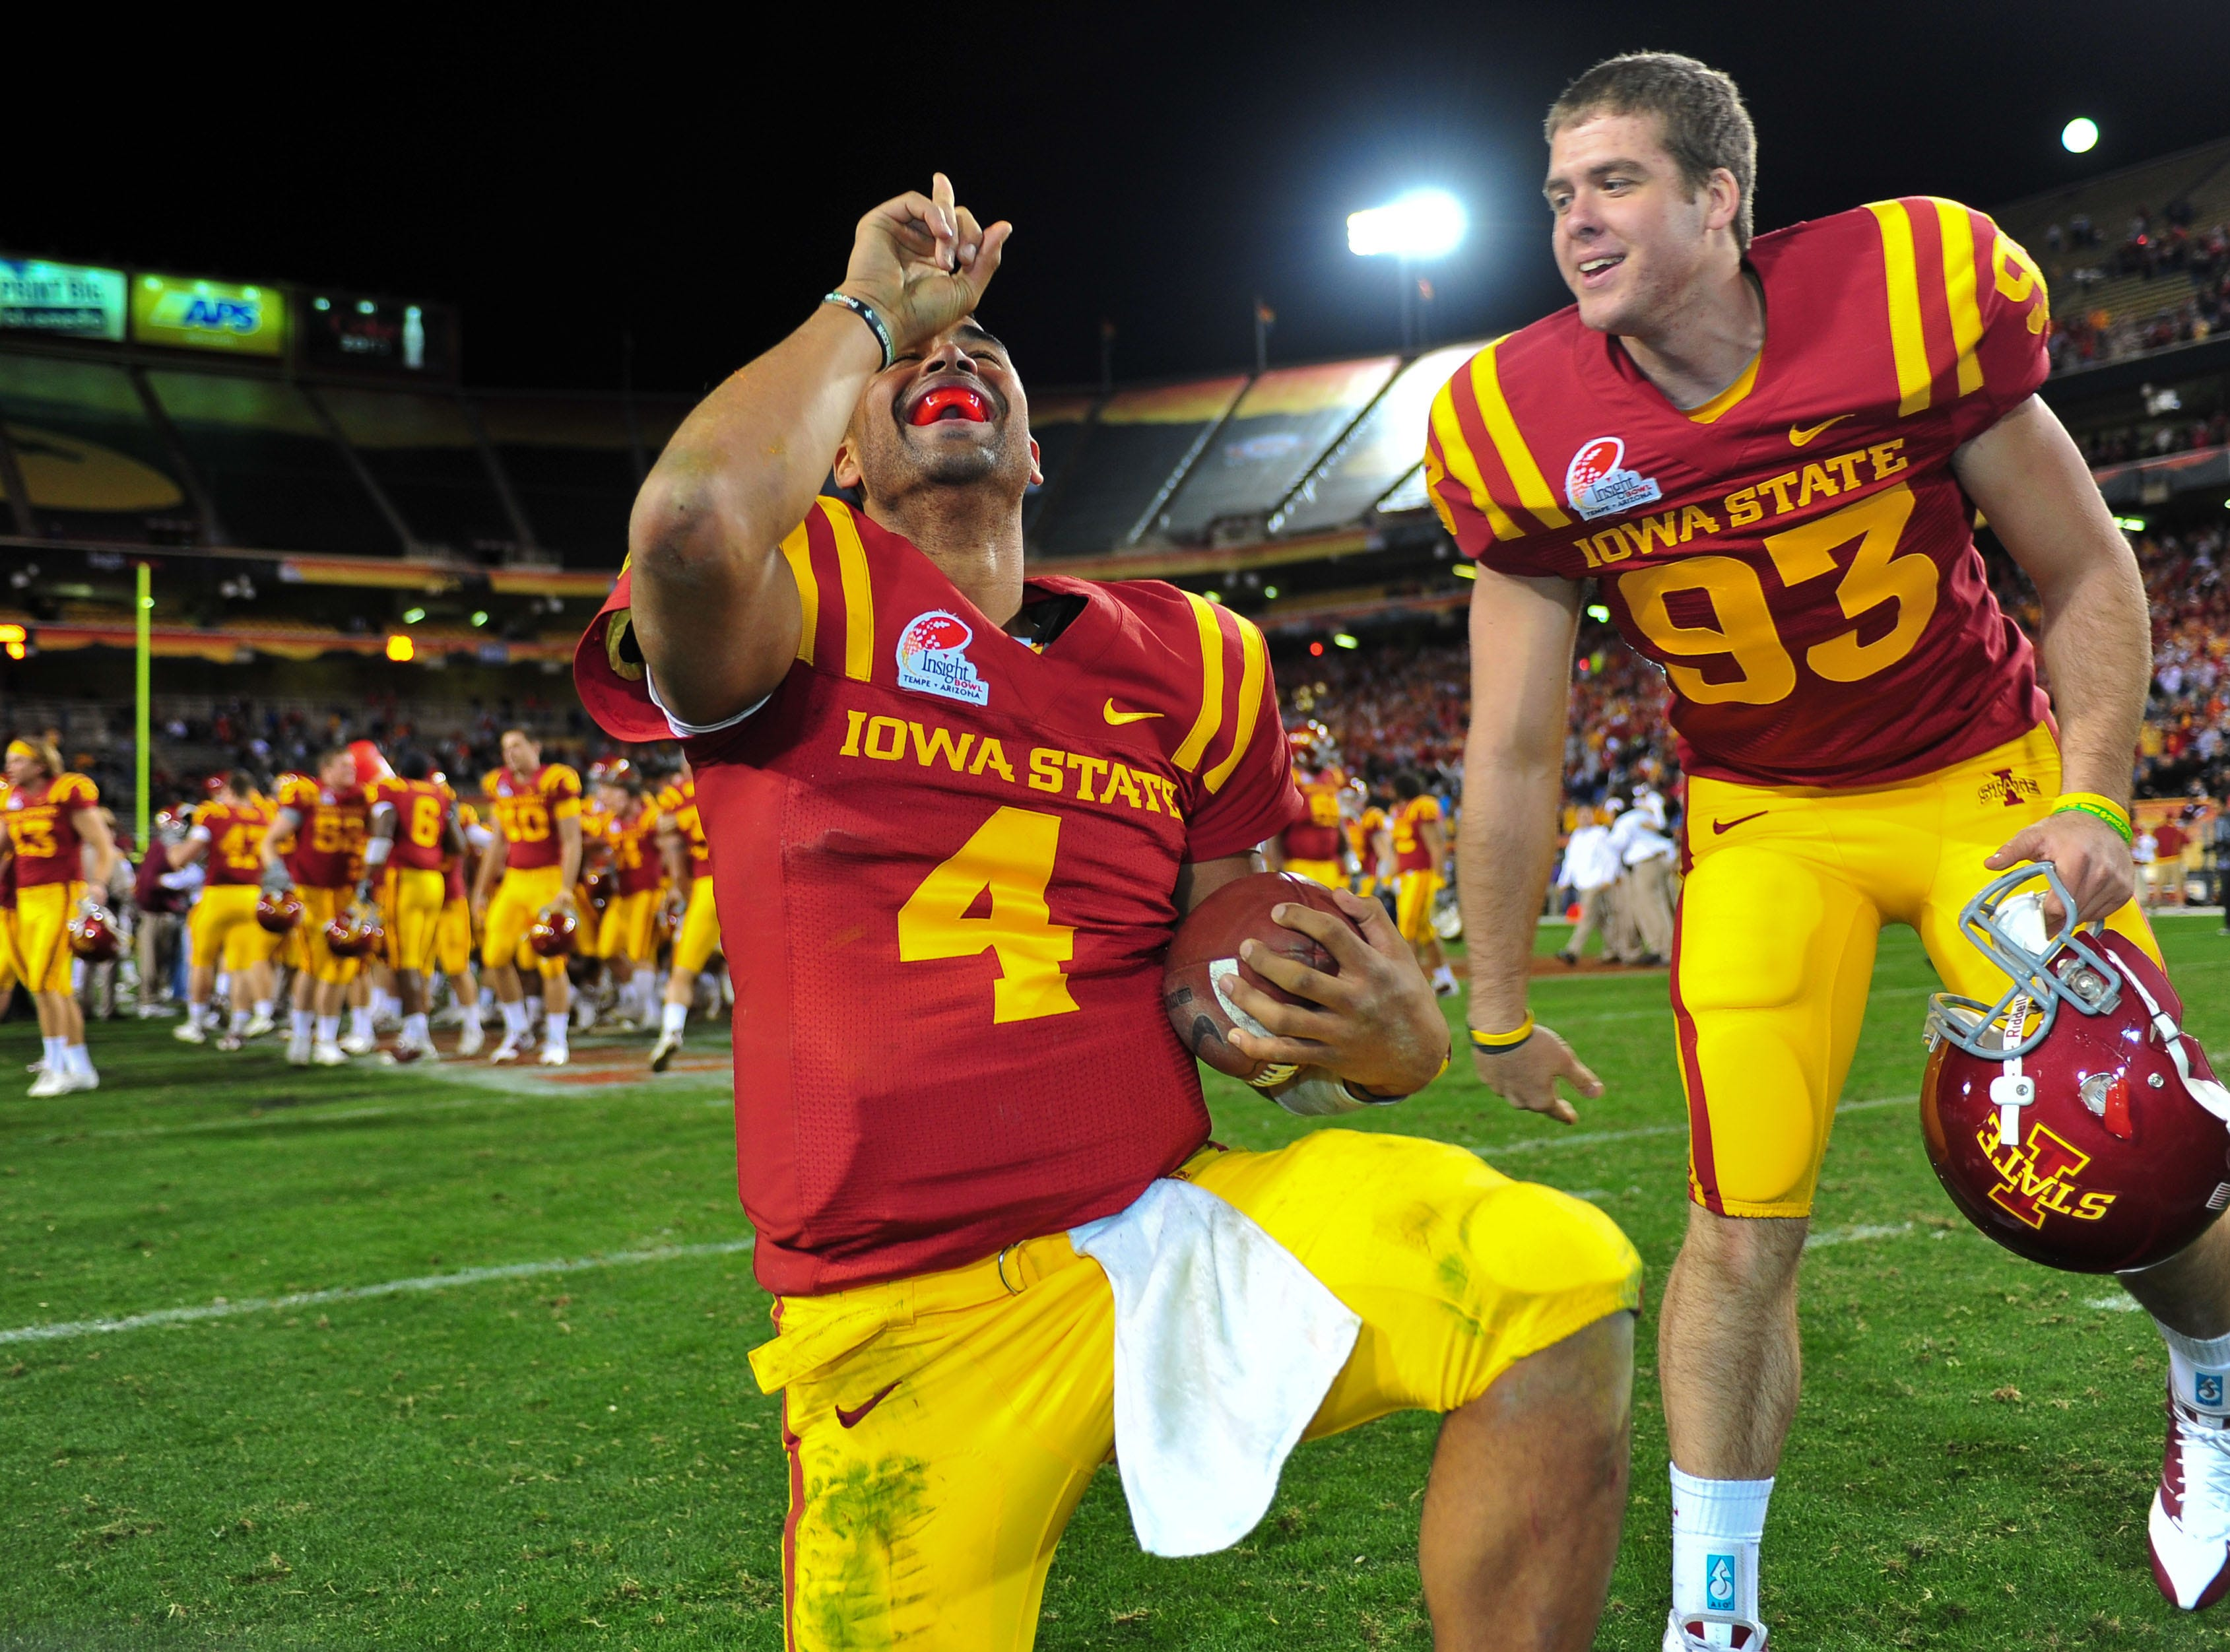 Dec 31, 2009; Tempe, AZ, USA; Iowa State Cyclones quarterback Austen Arnaud (4) and center Sam Anker (93) celebrate their 14-13 victory over the Minnesota Golden Gophers in the 2009 Insight Bowl at Sun Devil Stadium.  Mandatory Credit: Chris Morrison-USA TODAY Sports